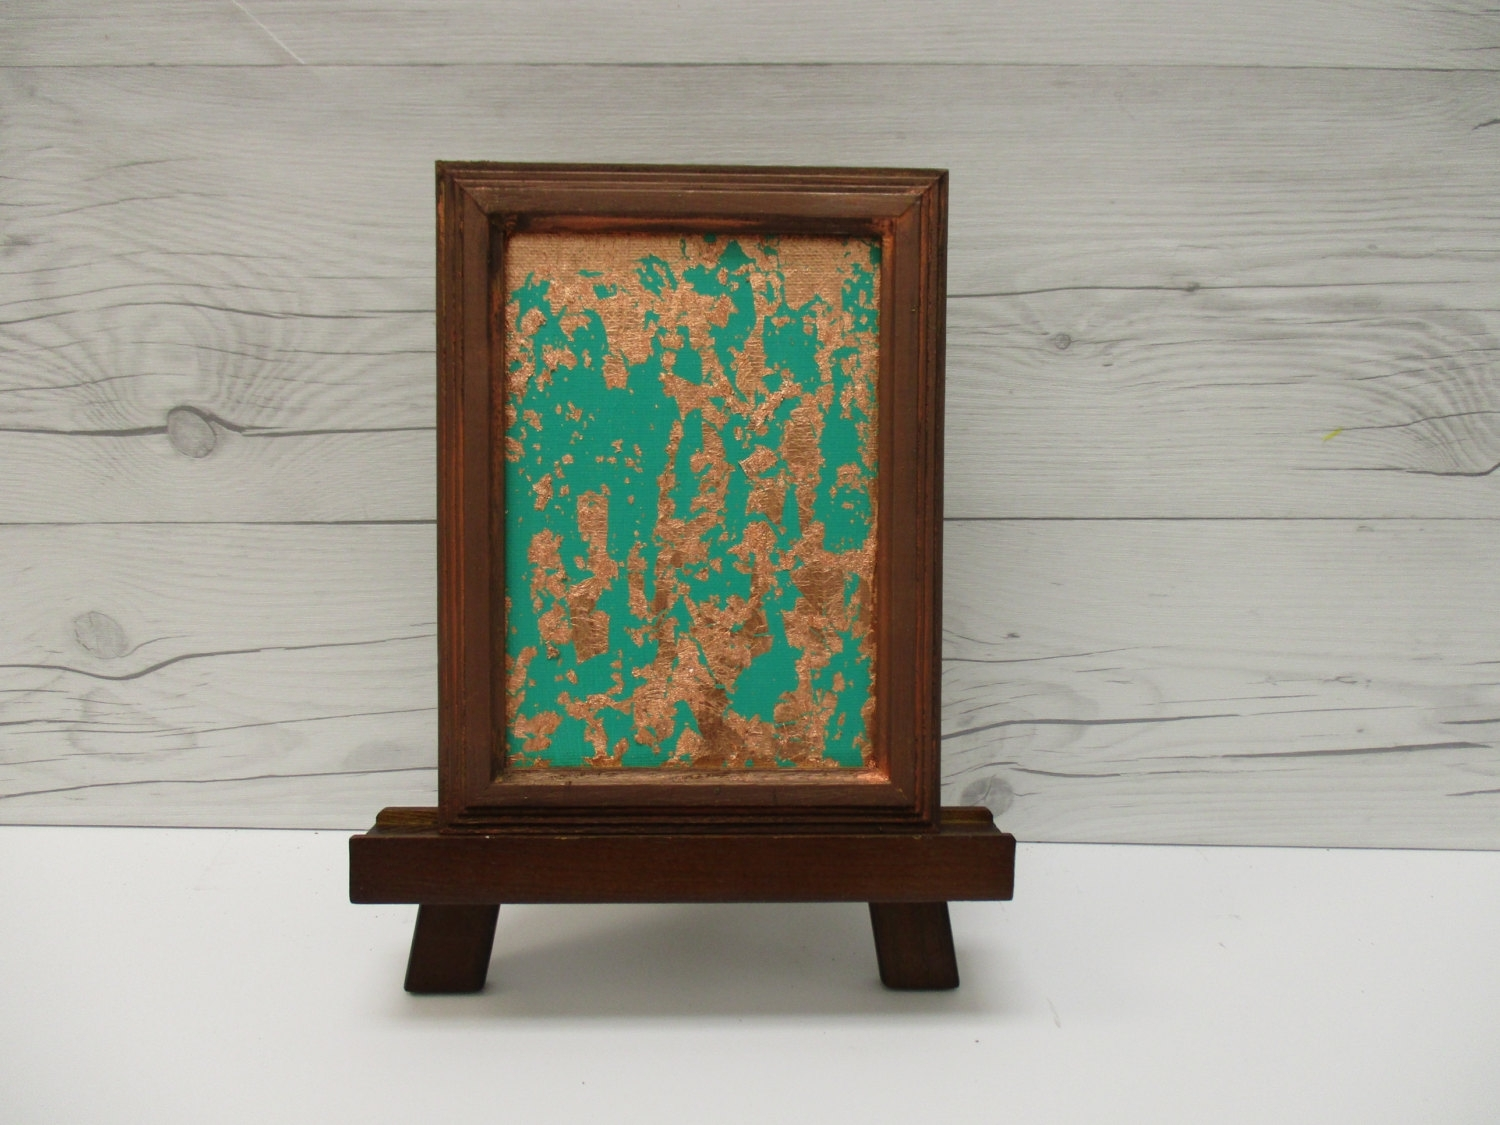 Copper Wall Art, Copper Leaf, Emerald Green Abstract, Green Within Latest Affordable Abstract Wall Art (View 13 of 20)